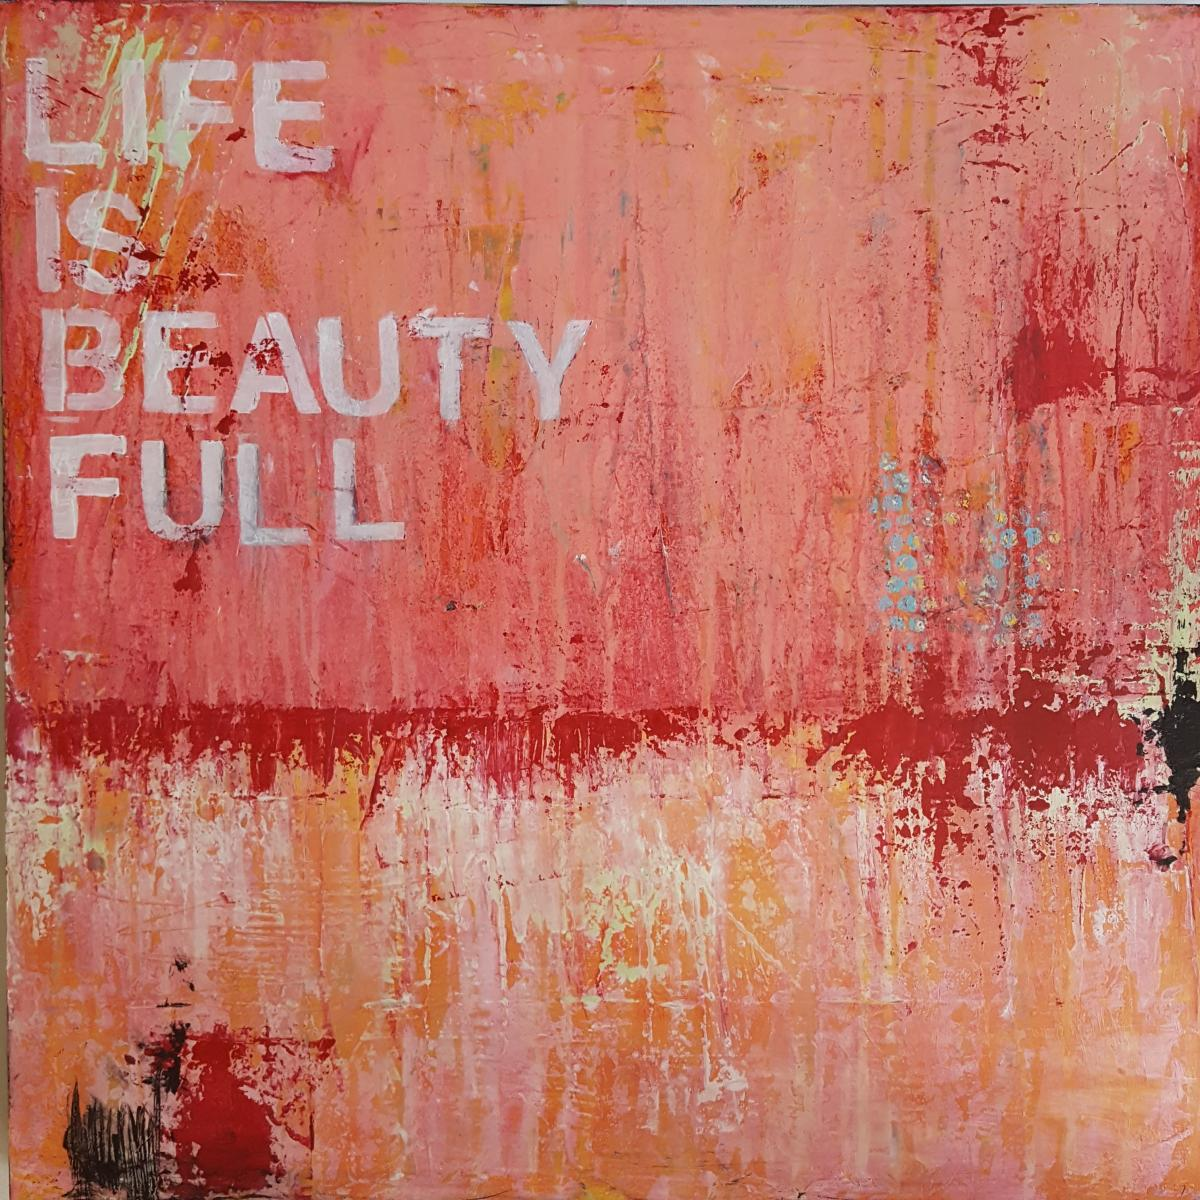 Life is Beauty Full | 24 x 24